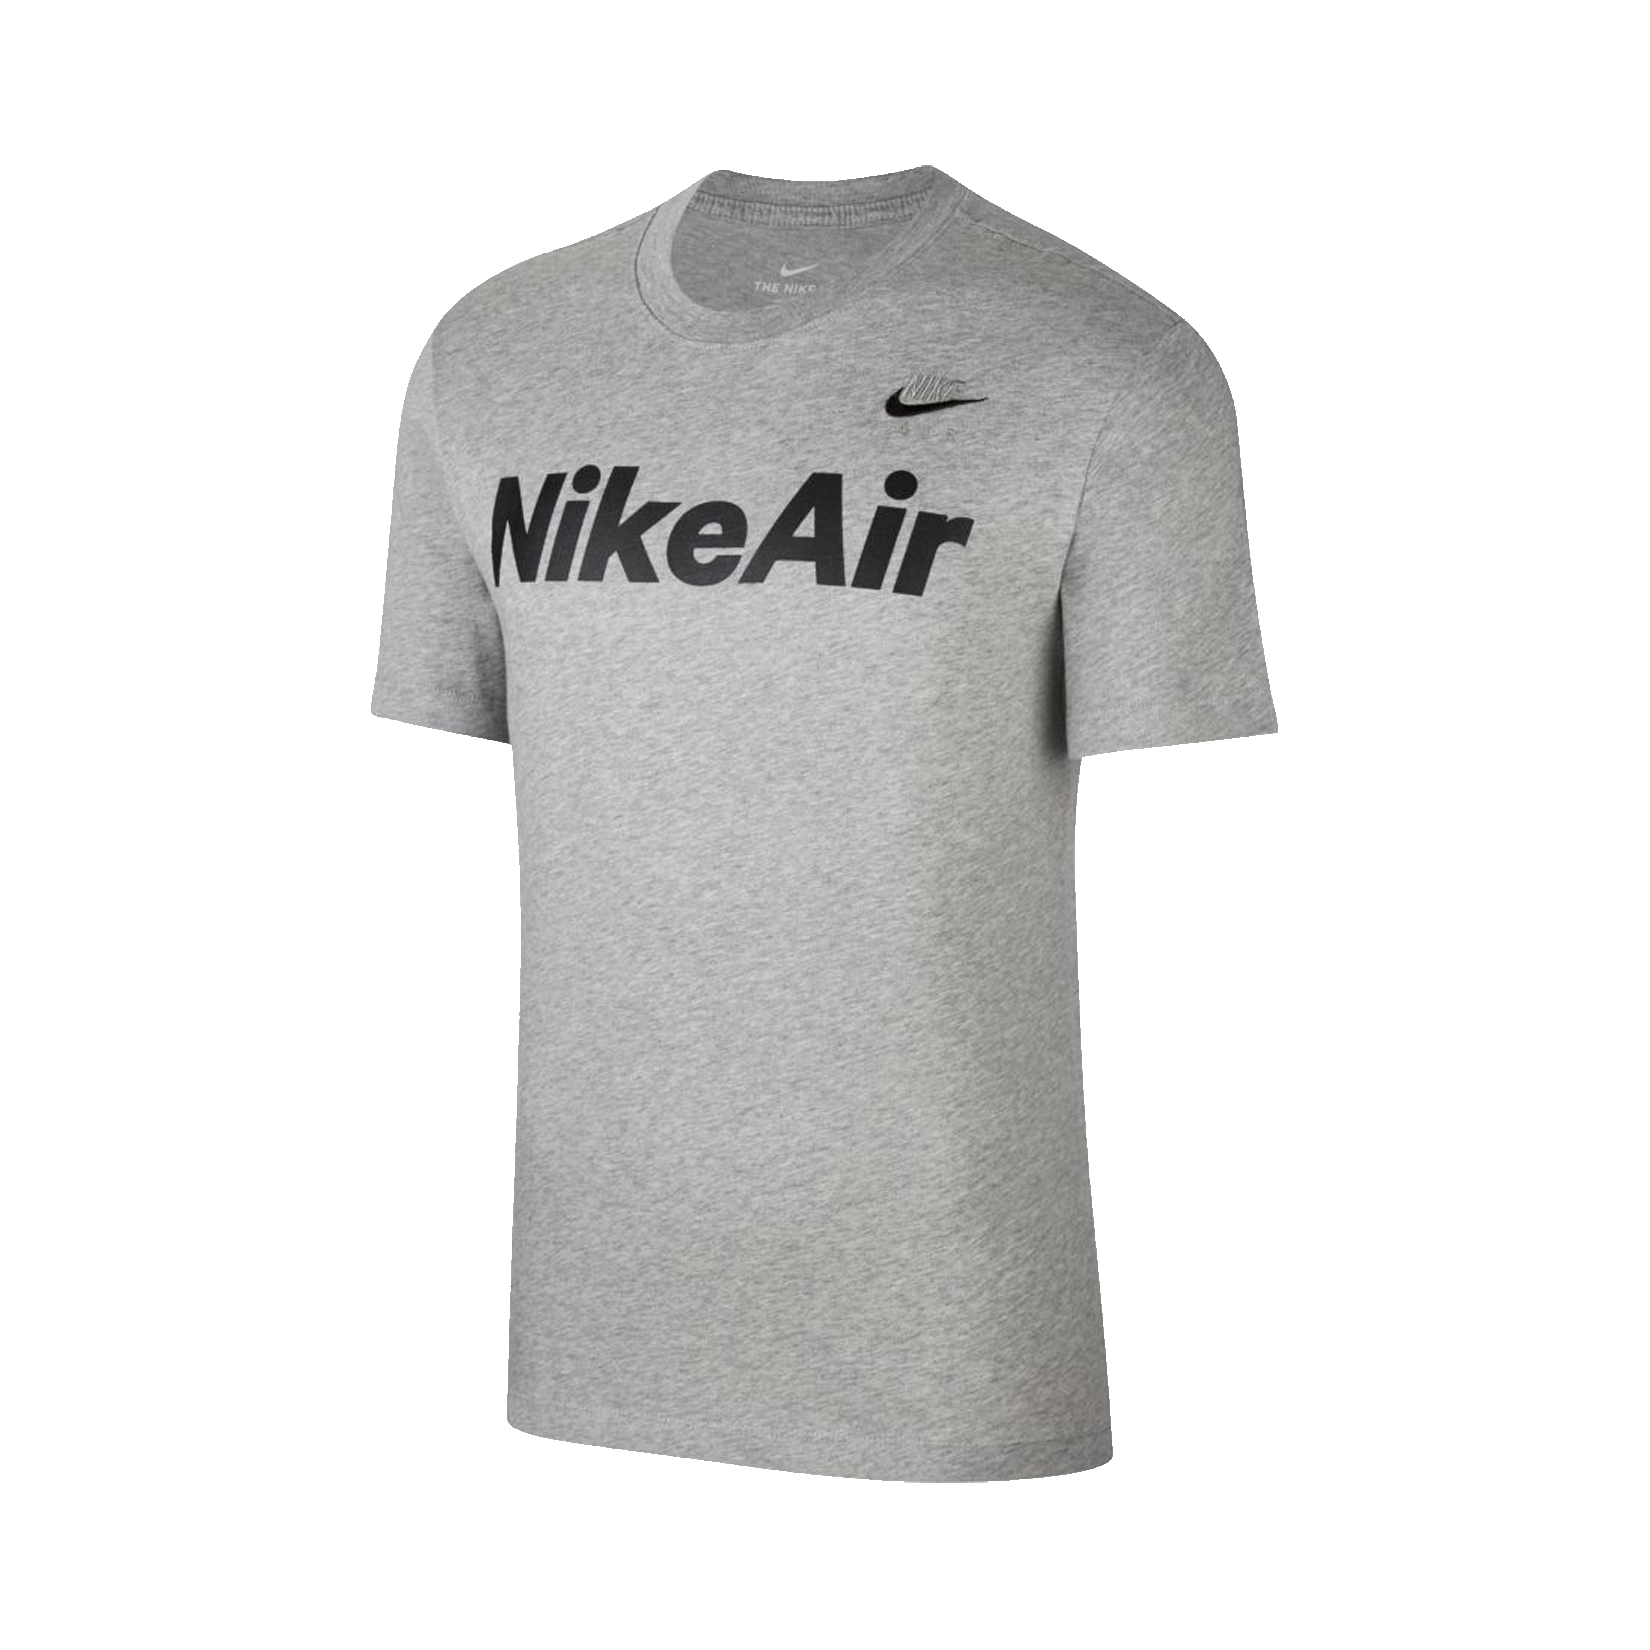 Nike Air T-Shirt Grey